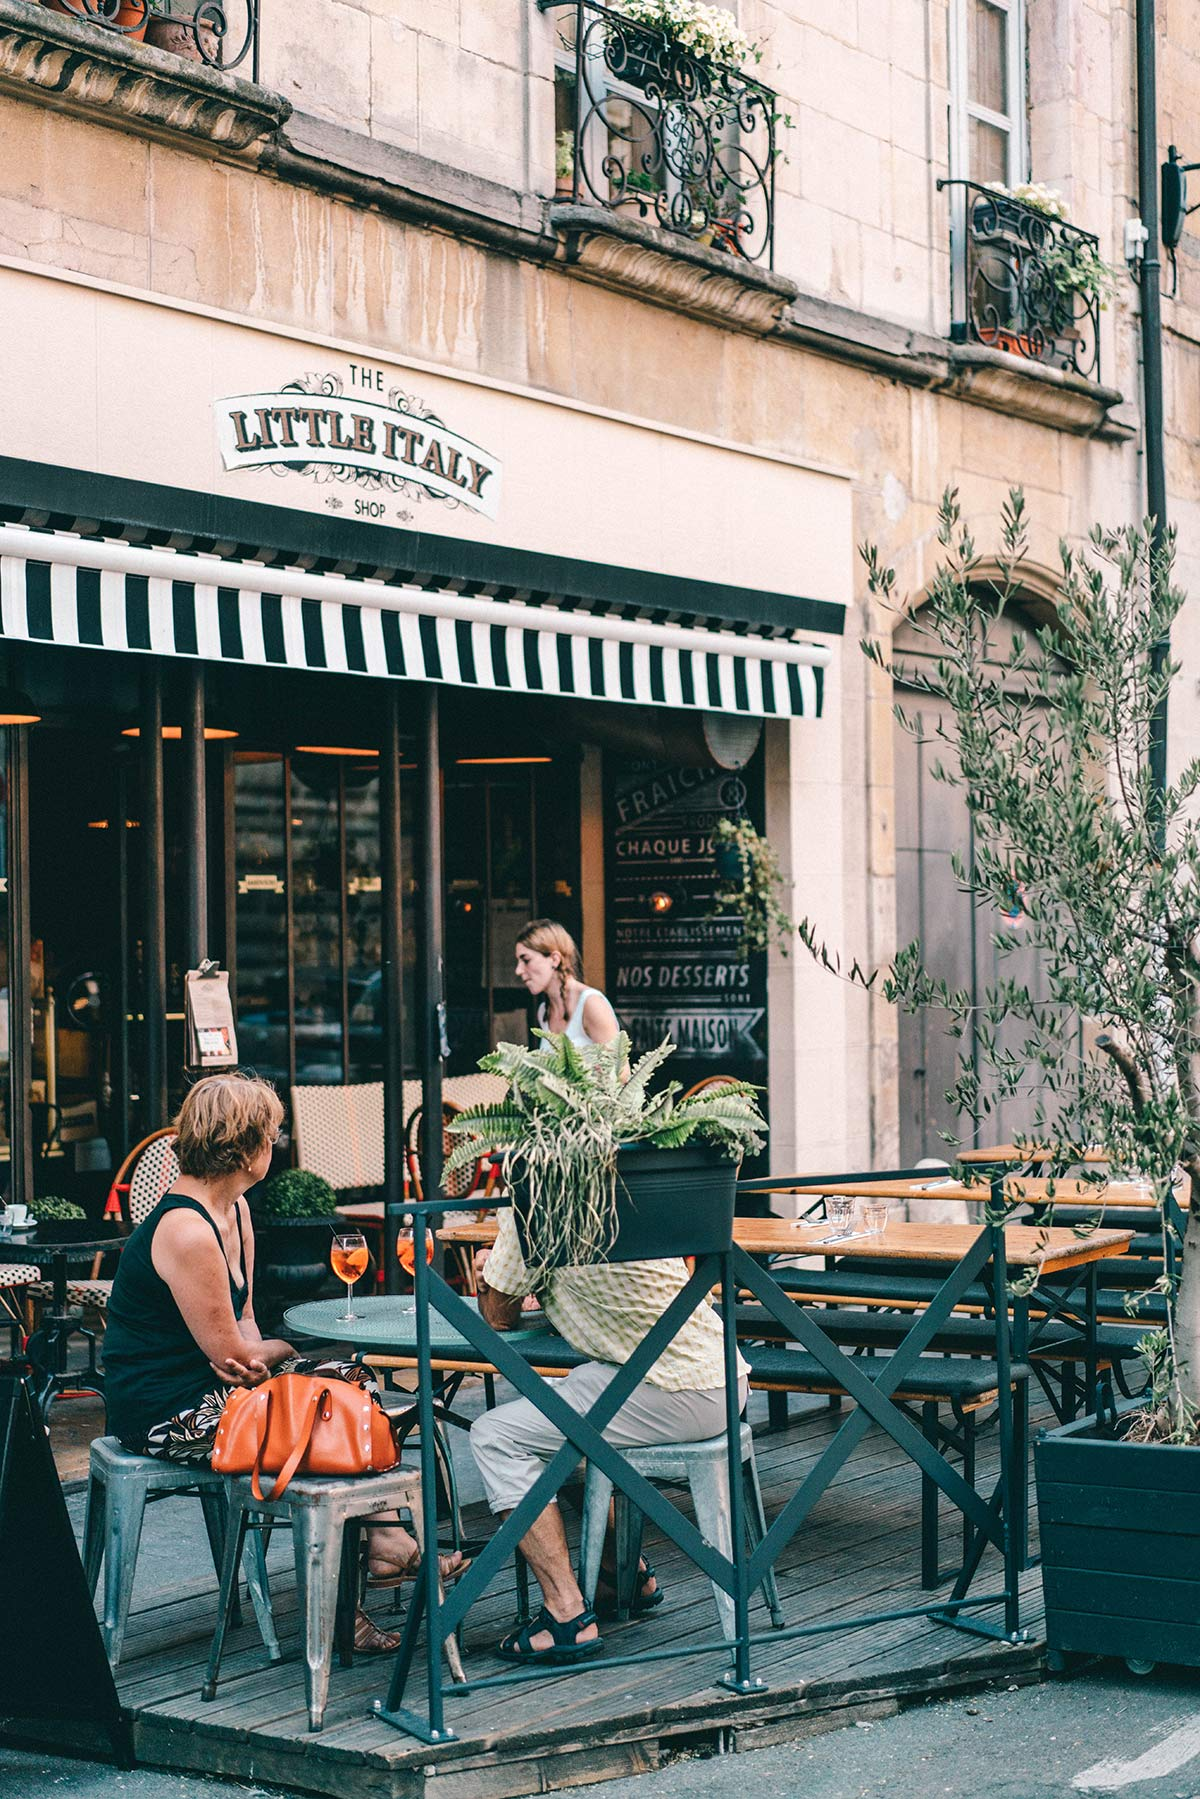 Little Italy in Dijon